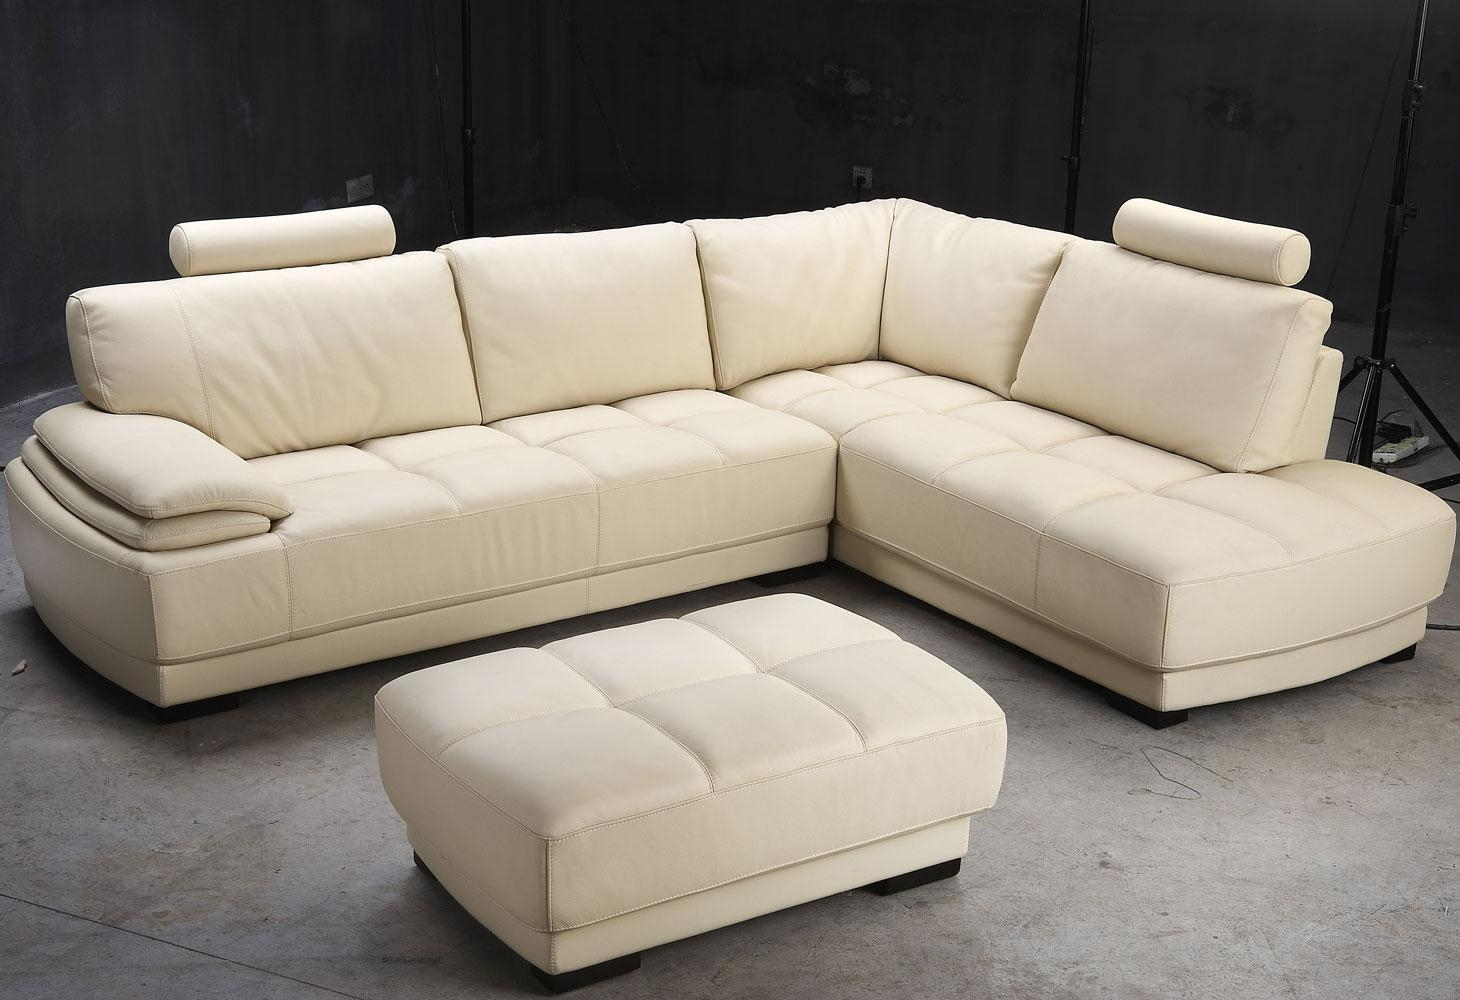 Leather Sofas Inside Beige Leather Couches (Image 13 of 20)